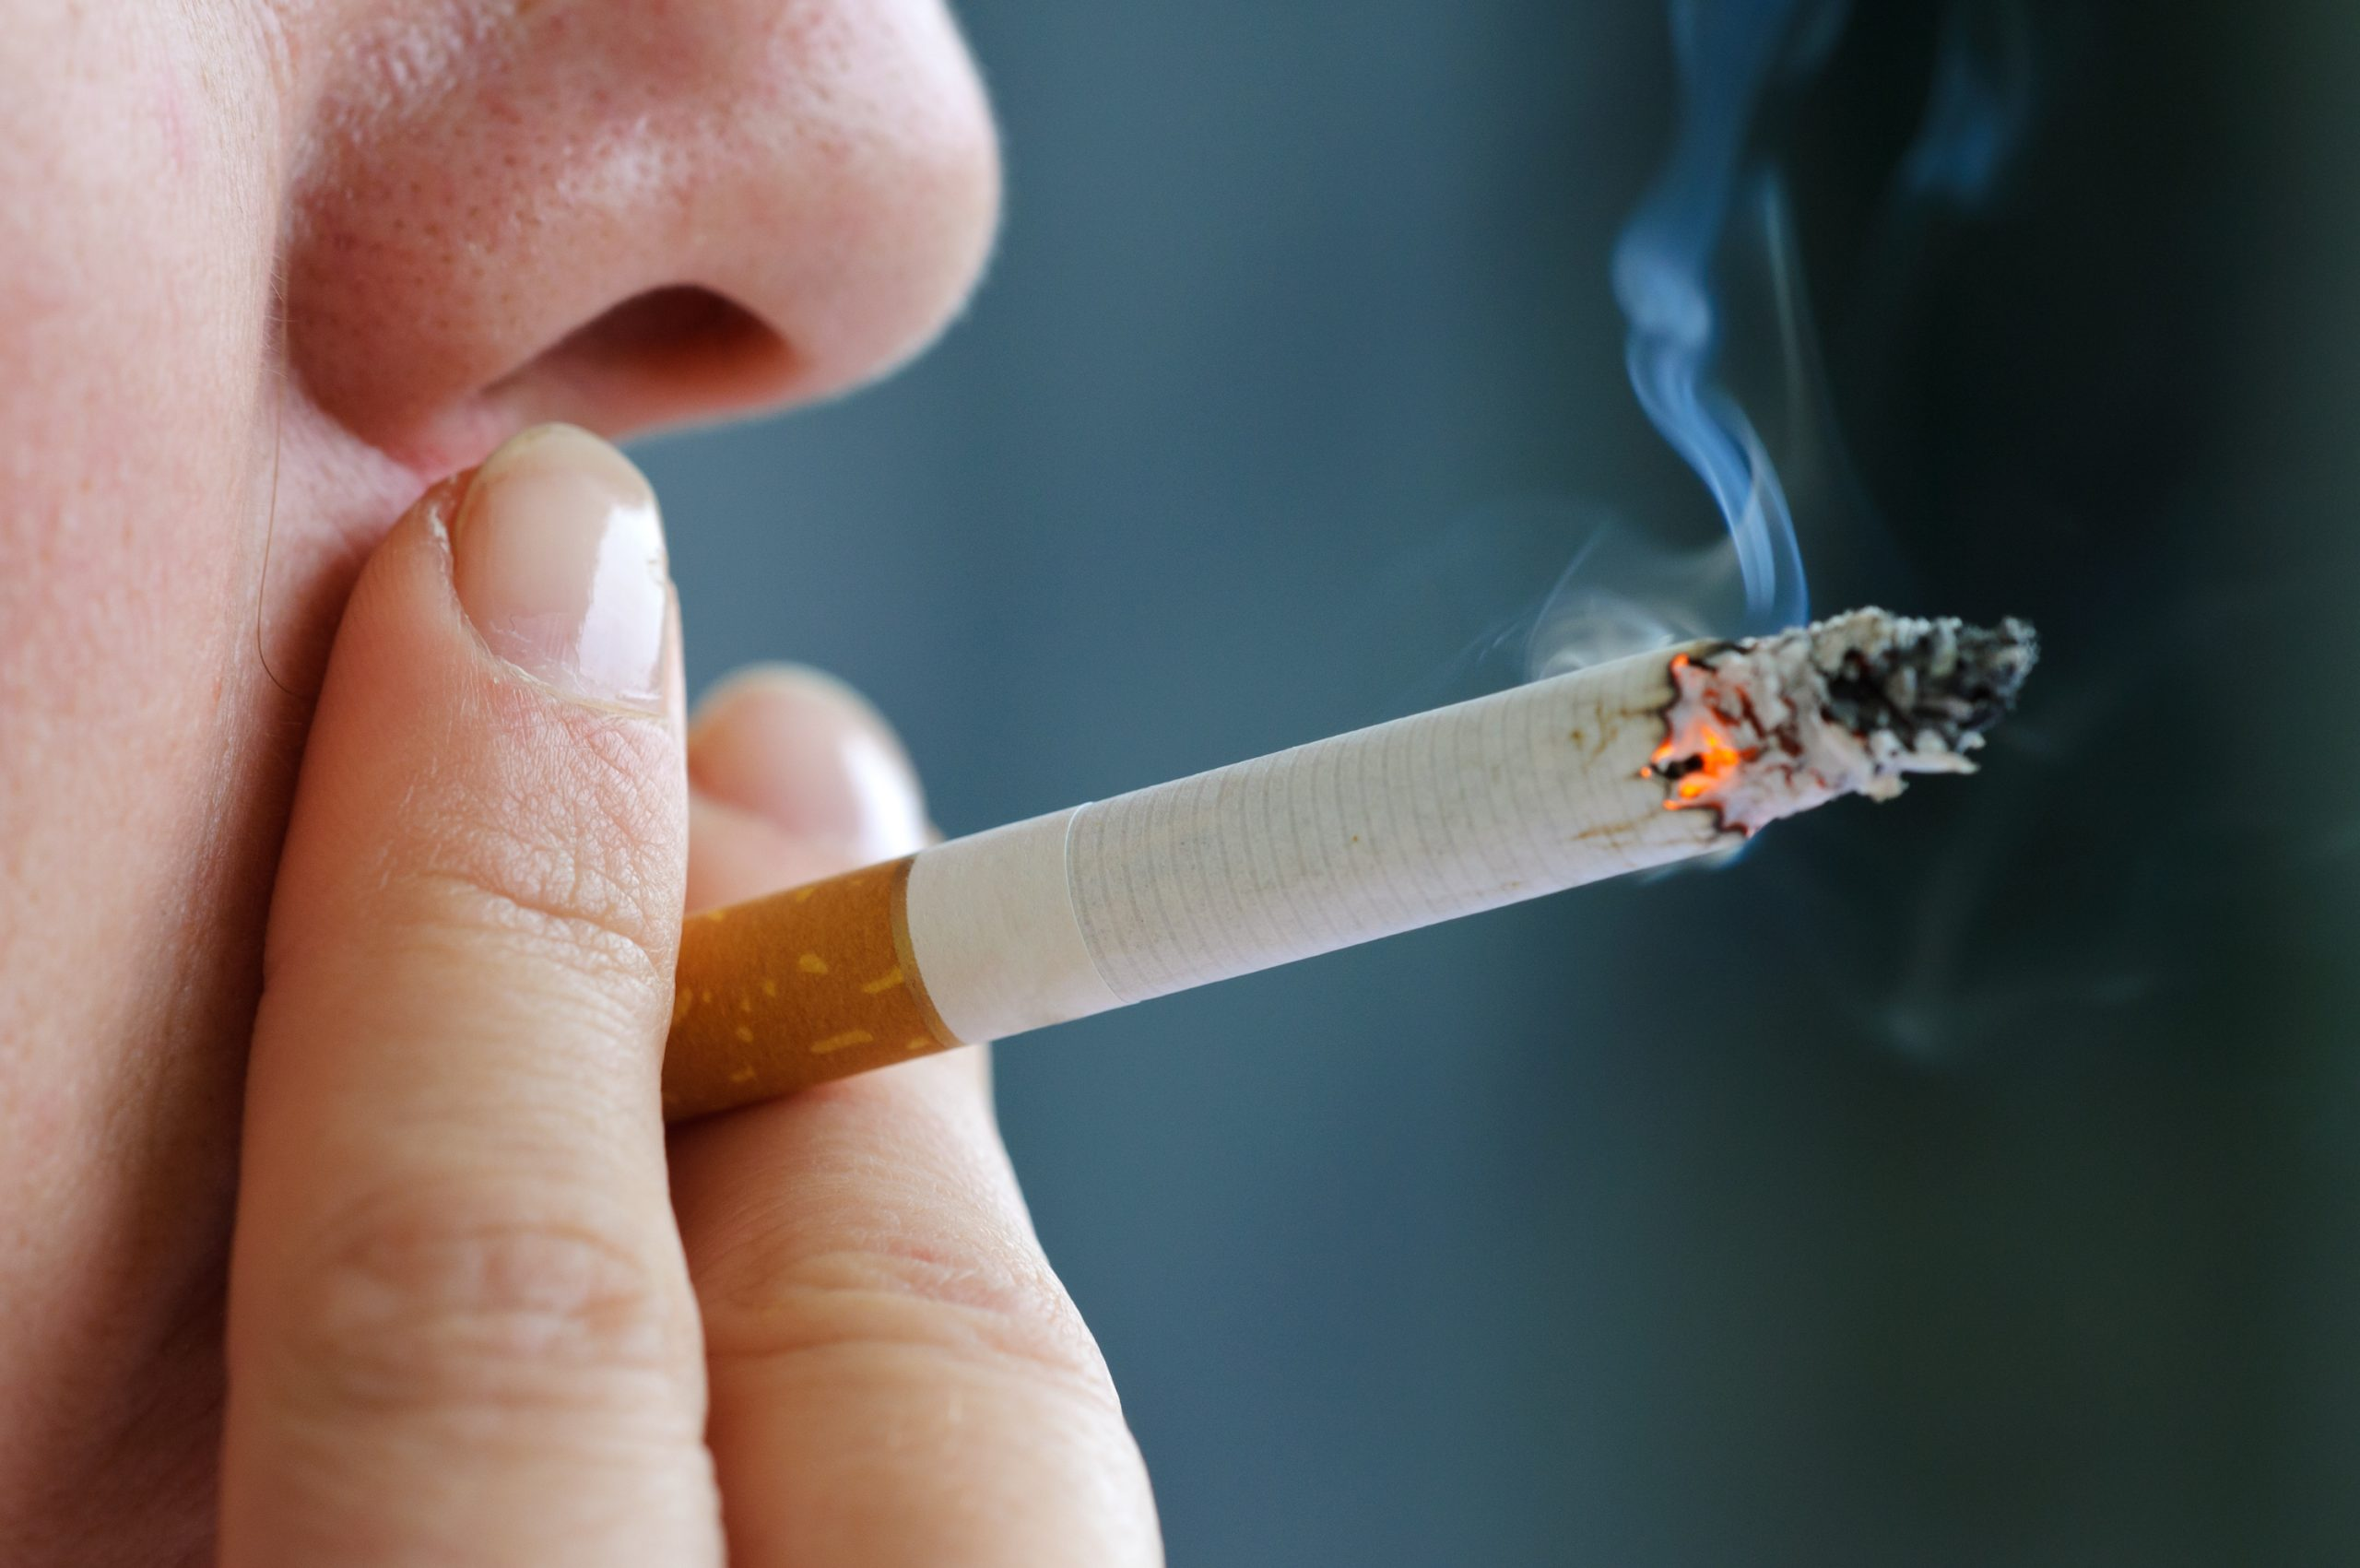 Research: Smoking causes cancer in 1 out of every 3 people